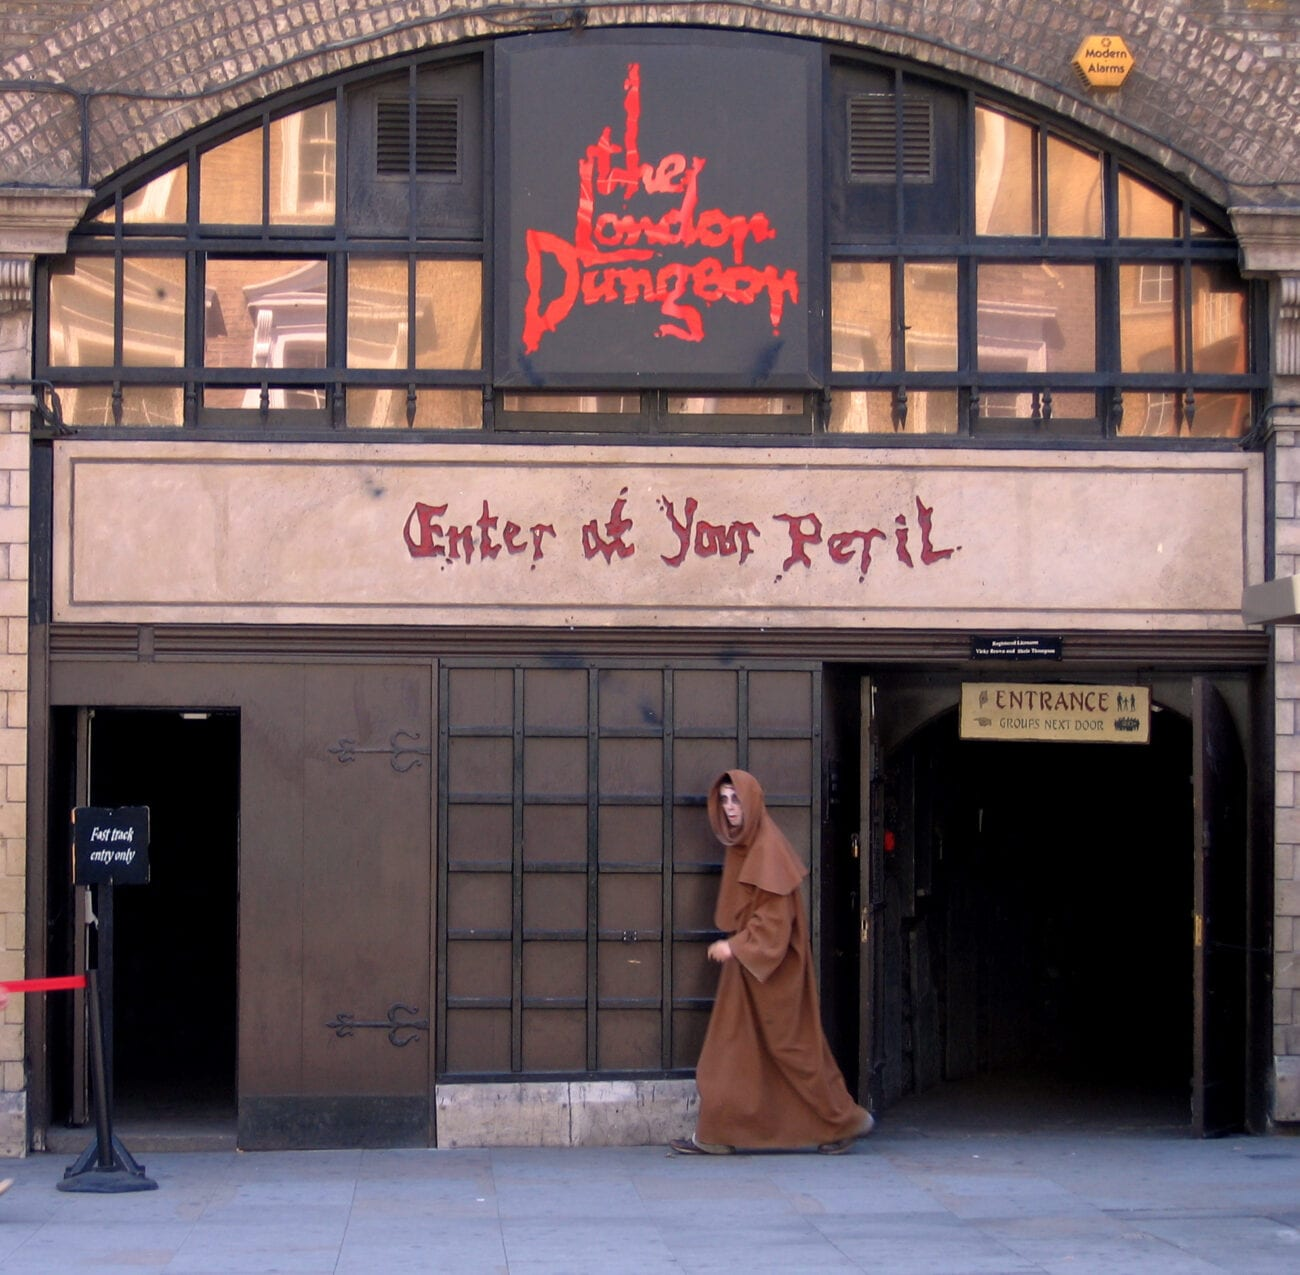 Do you share your name with a famous serial killer? The London Dungeon may have a deal for you! Learn about their macabre promotion and its controversy.